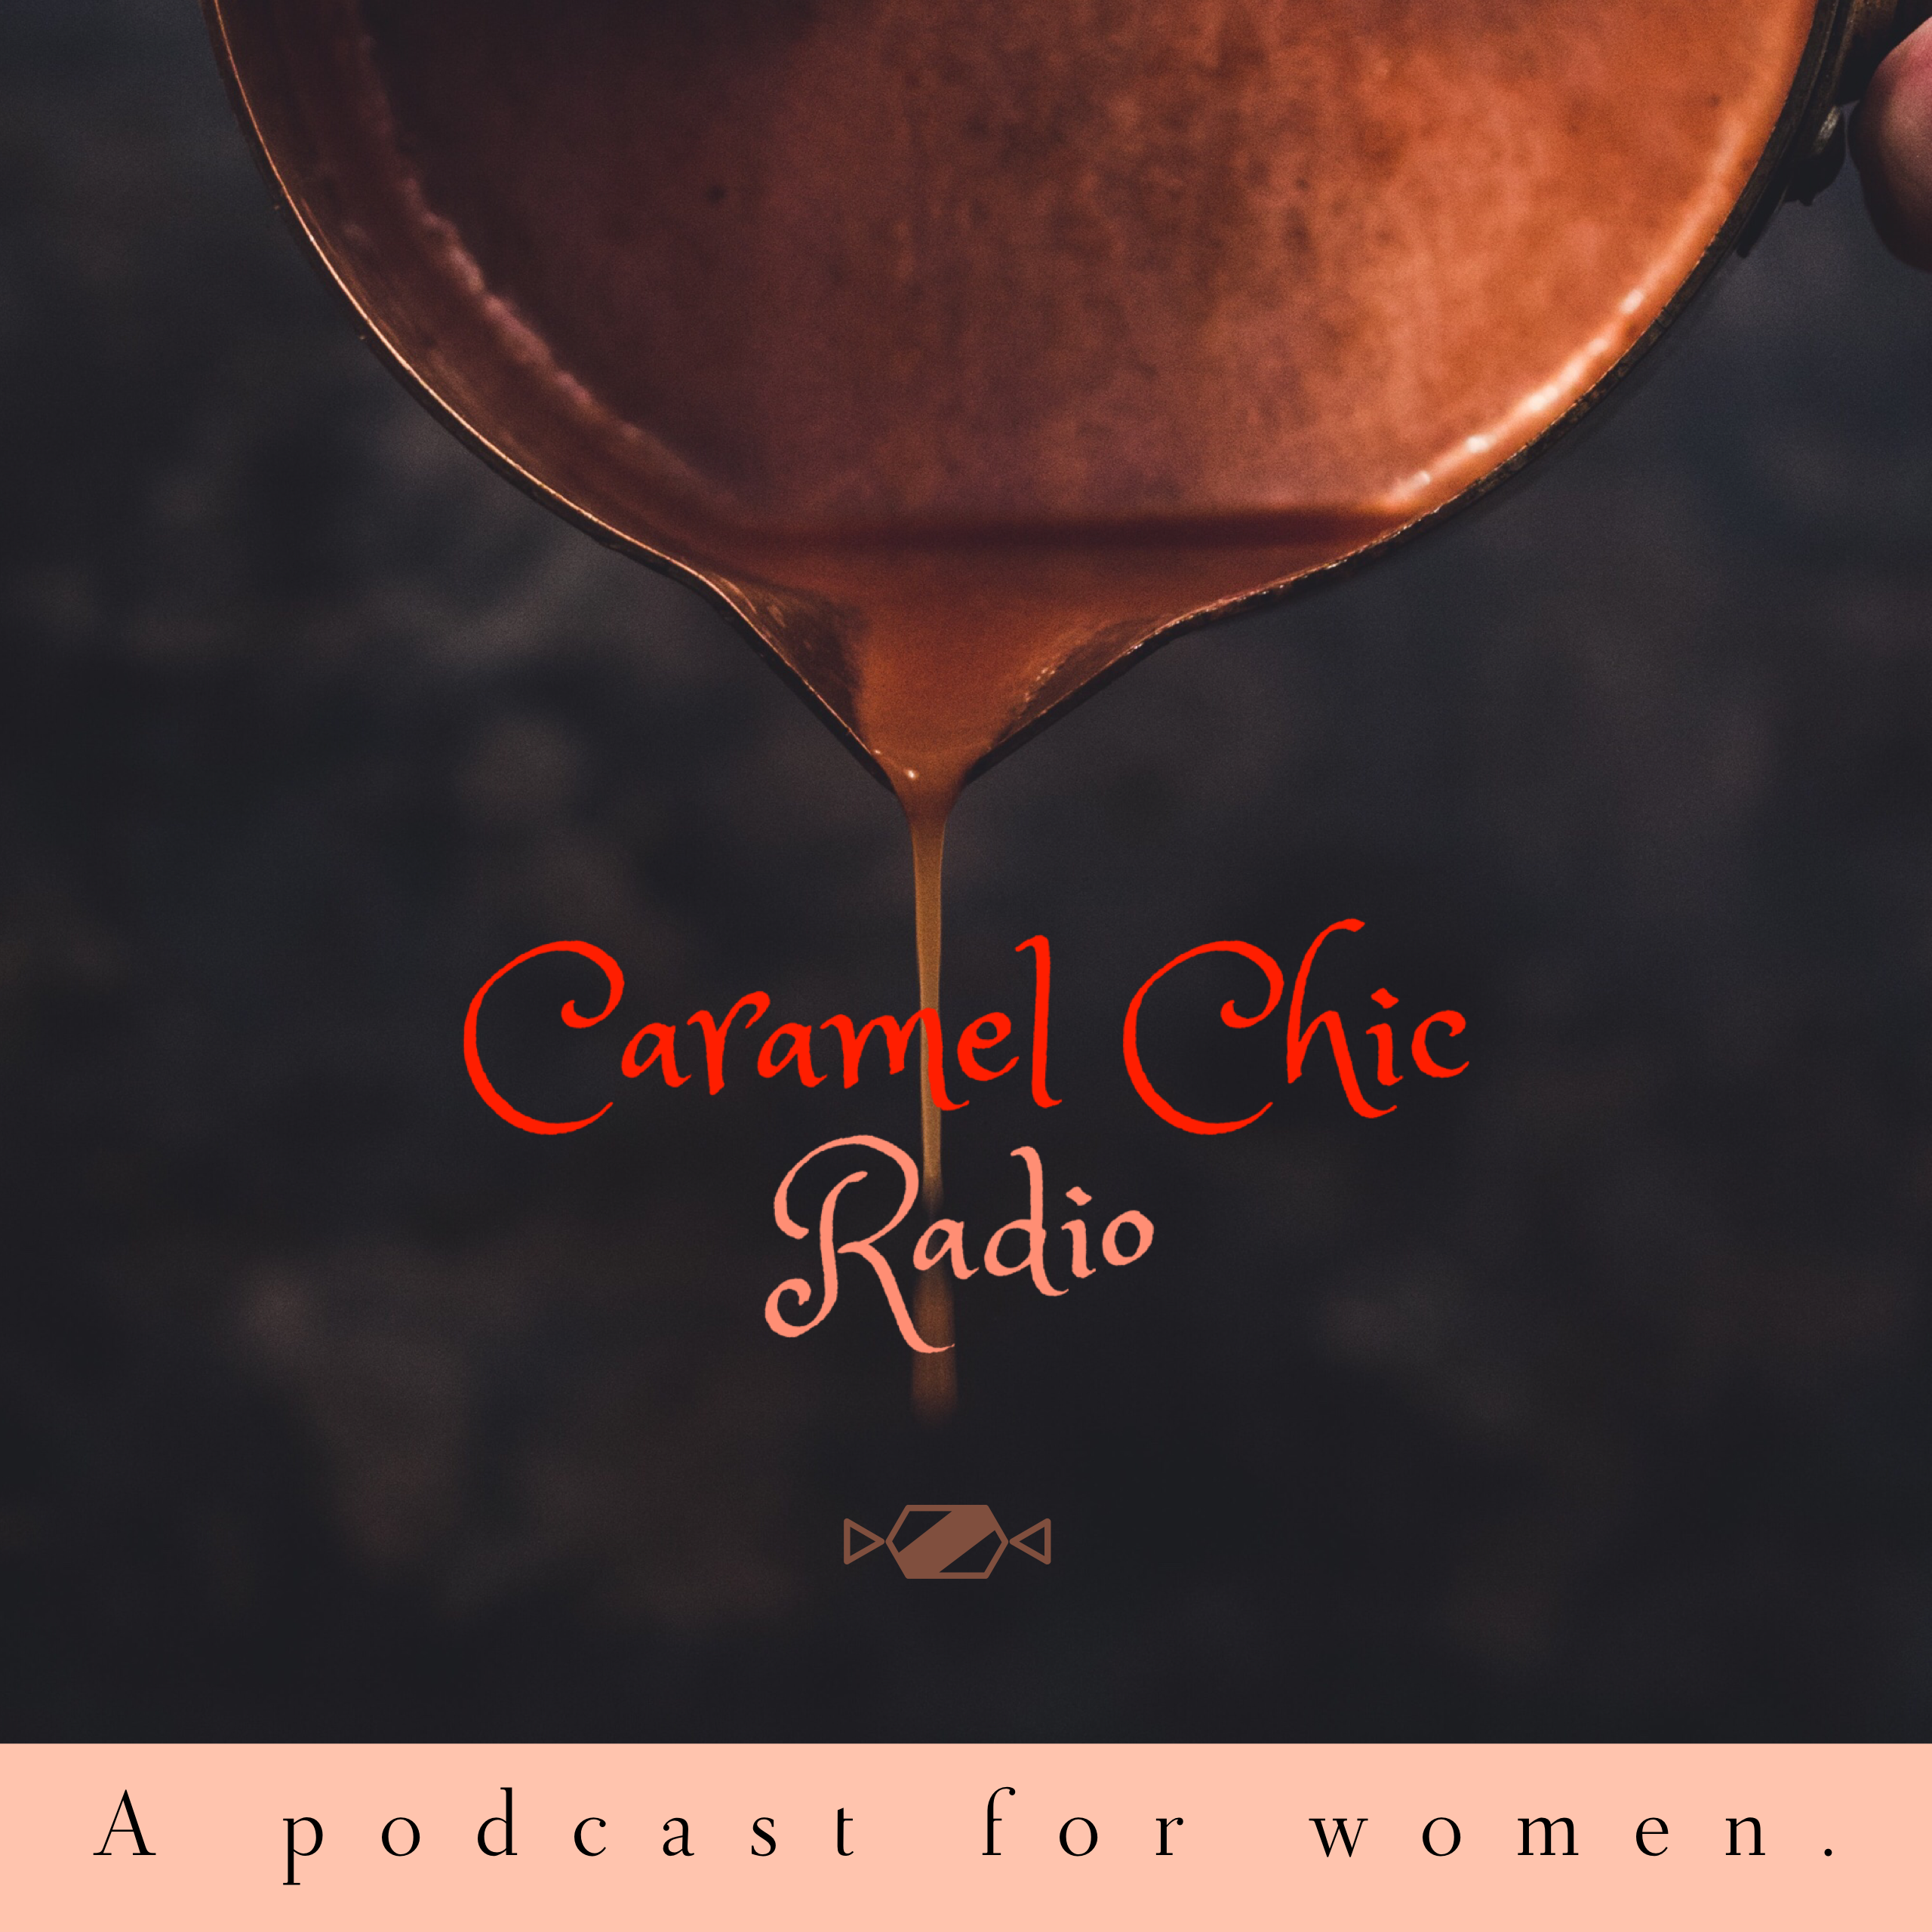 A podcast for women.